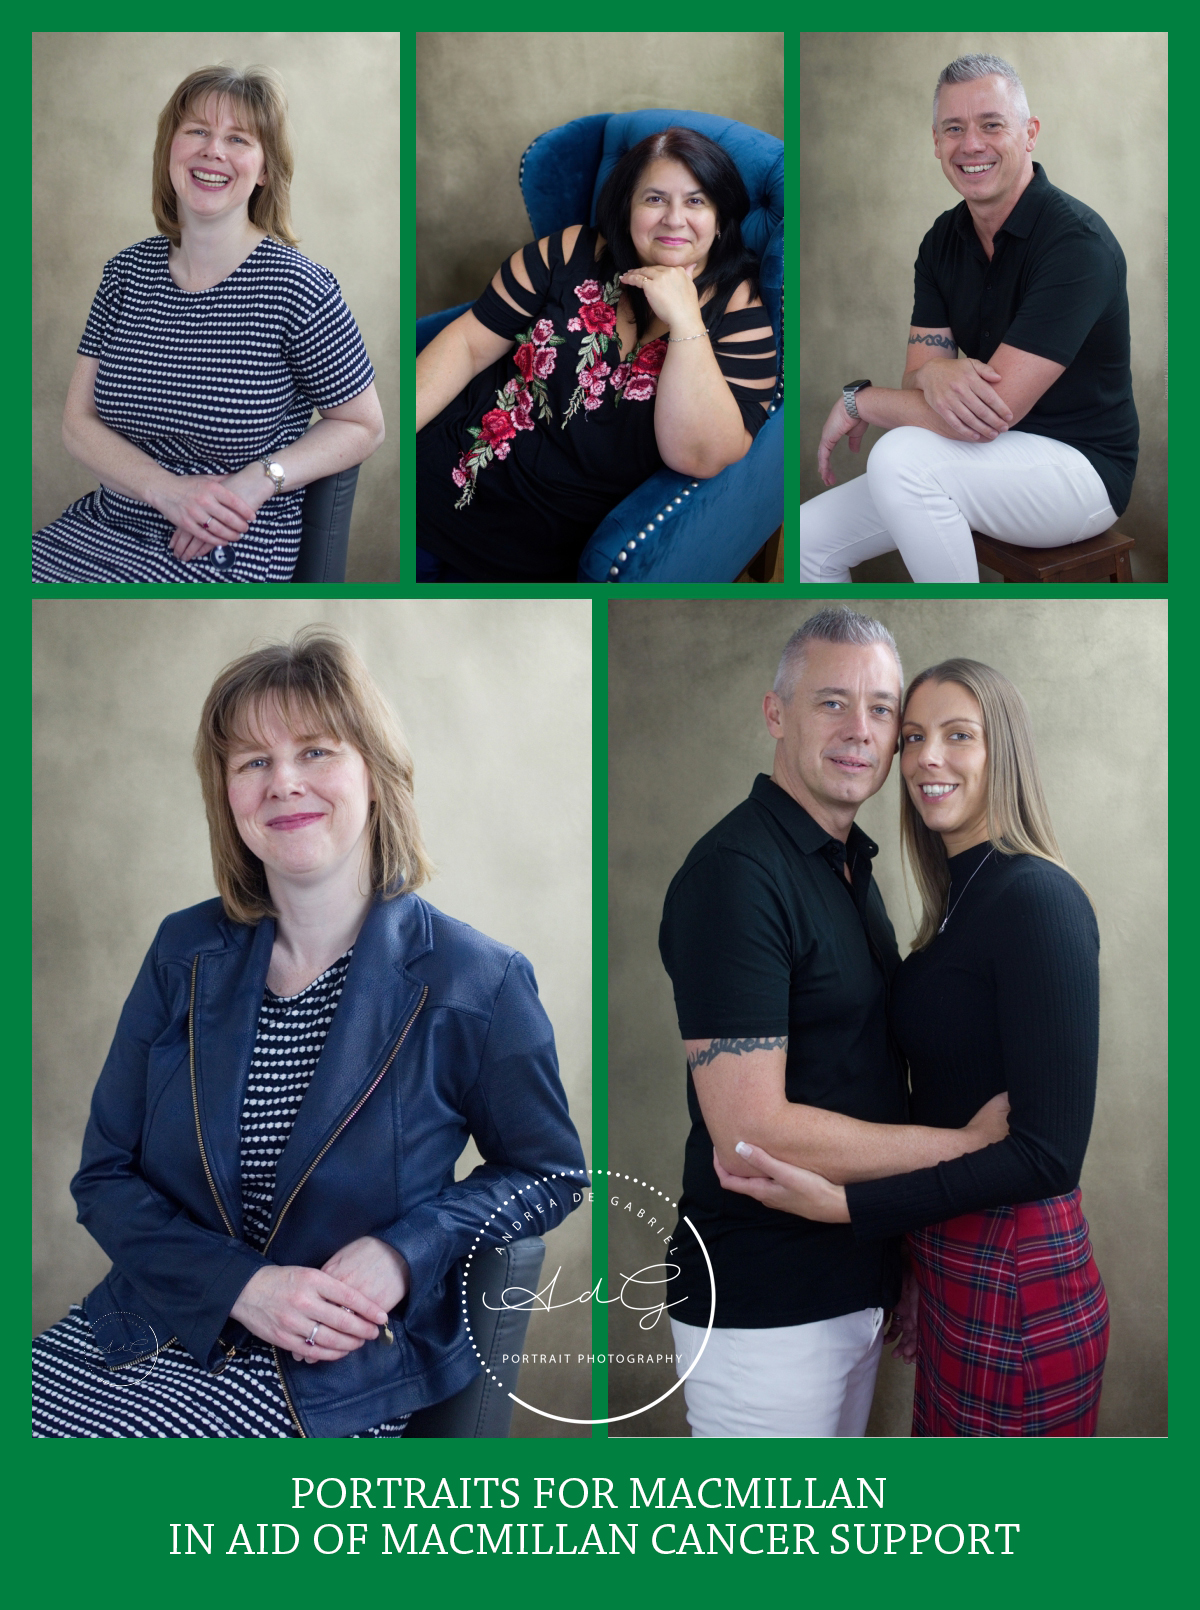 Portraits For Macmillan 1.jpg